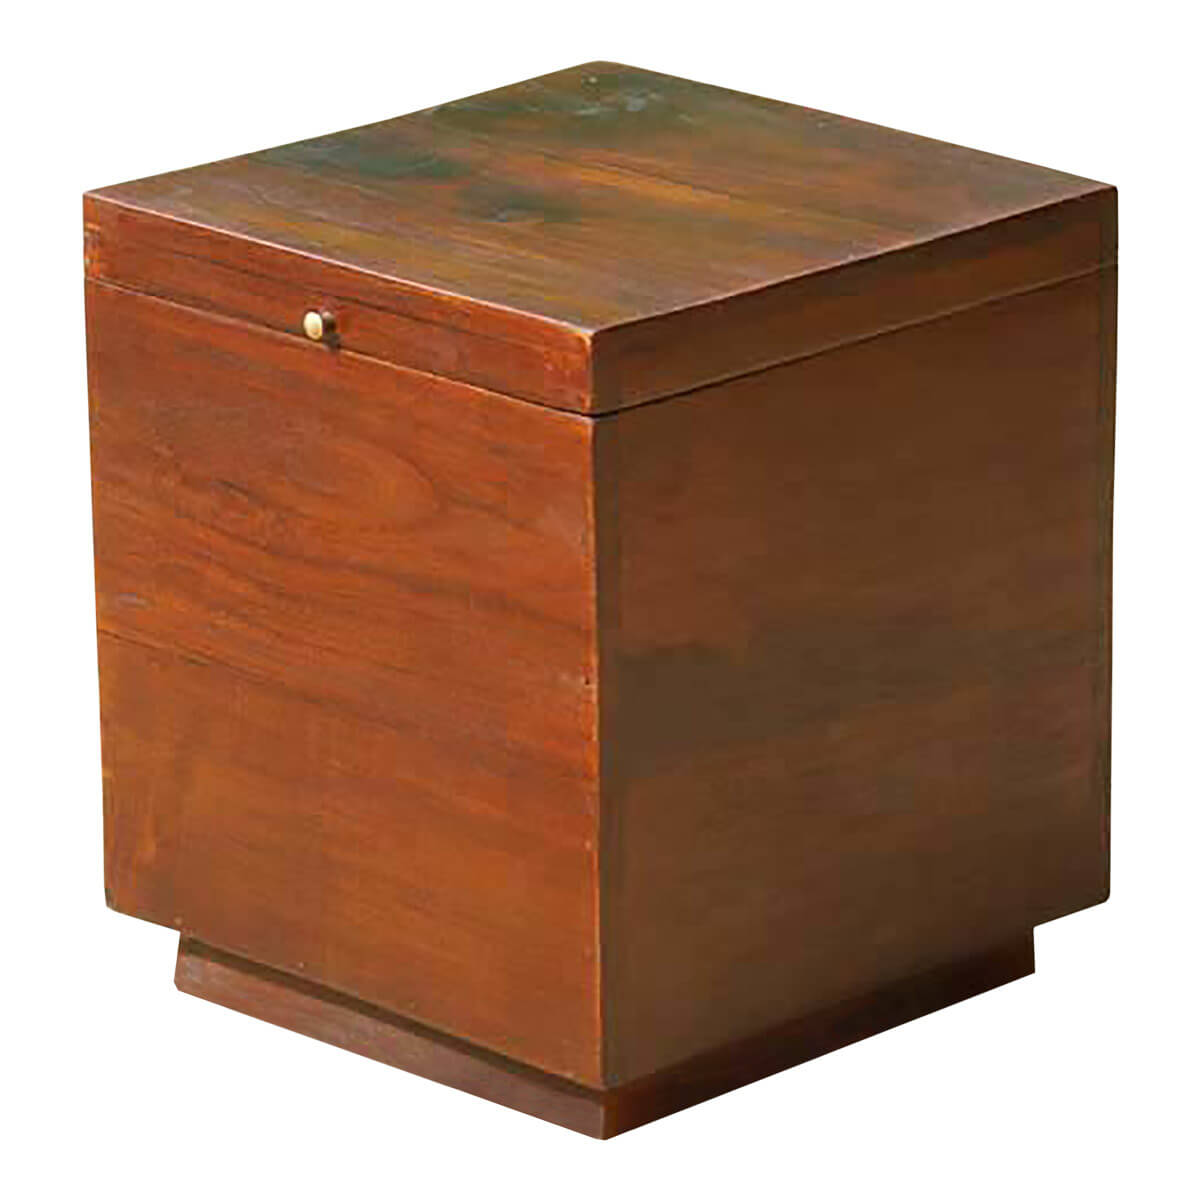 Box End Table Solid Wood Square Storage Box Coffee Side End Table New